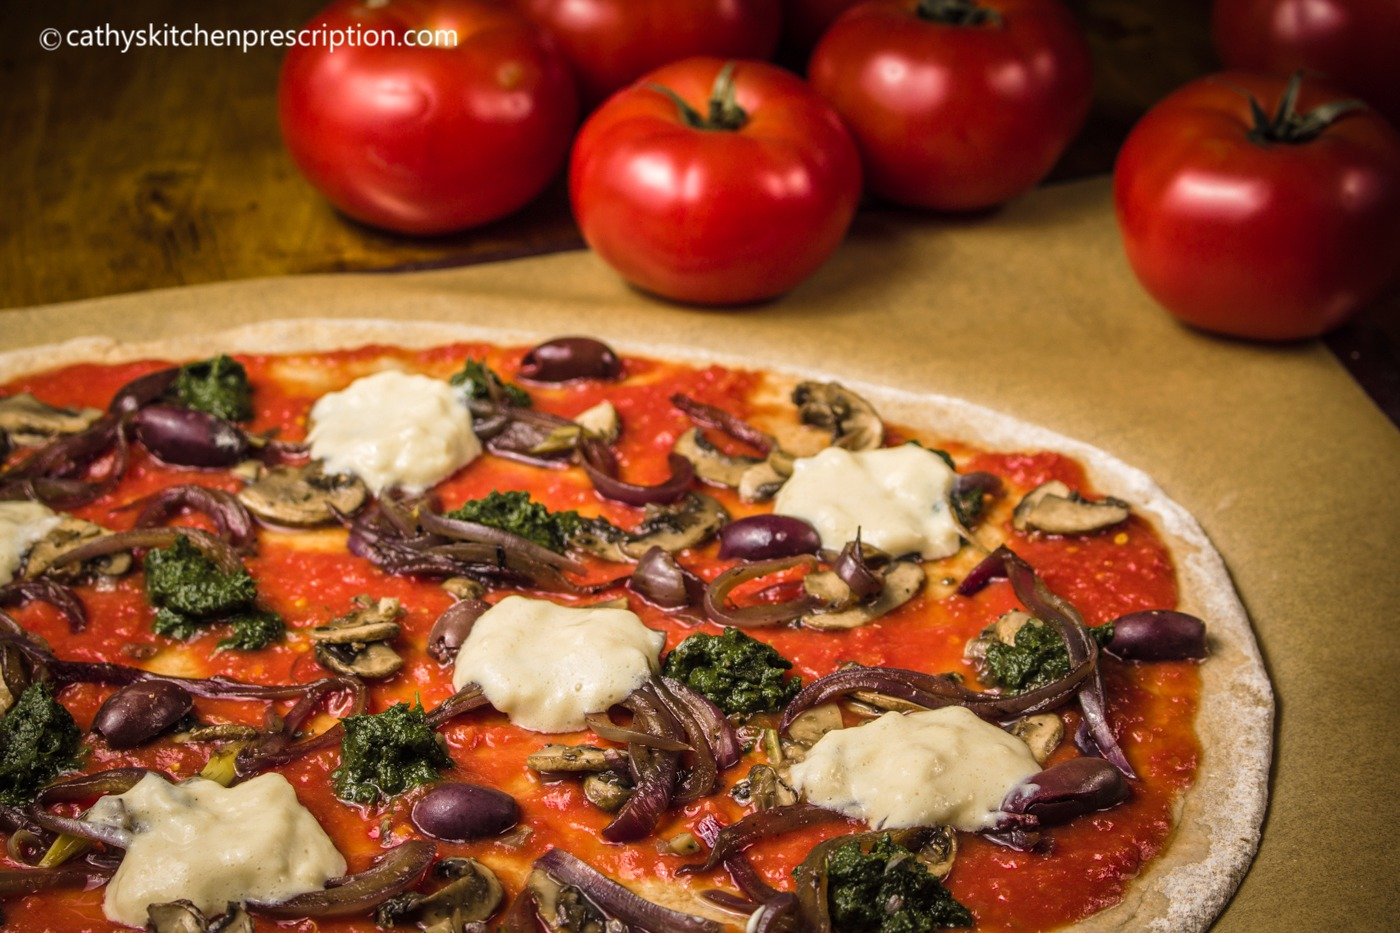 Whole grain pizza (no dairy or oils)